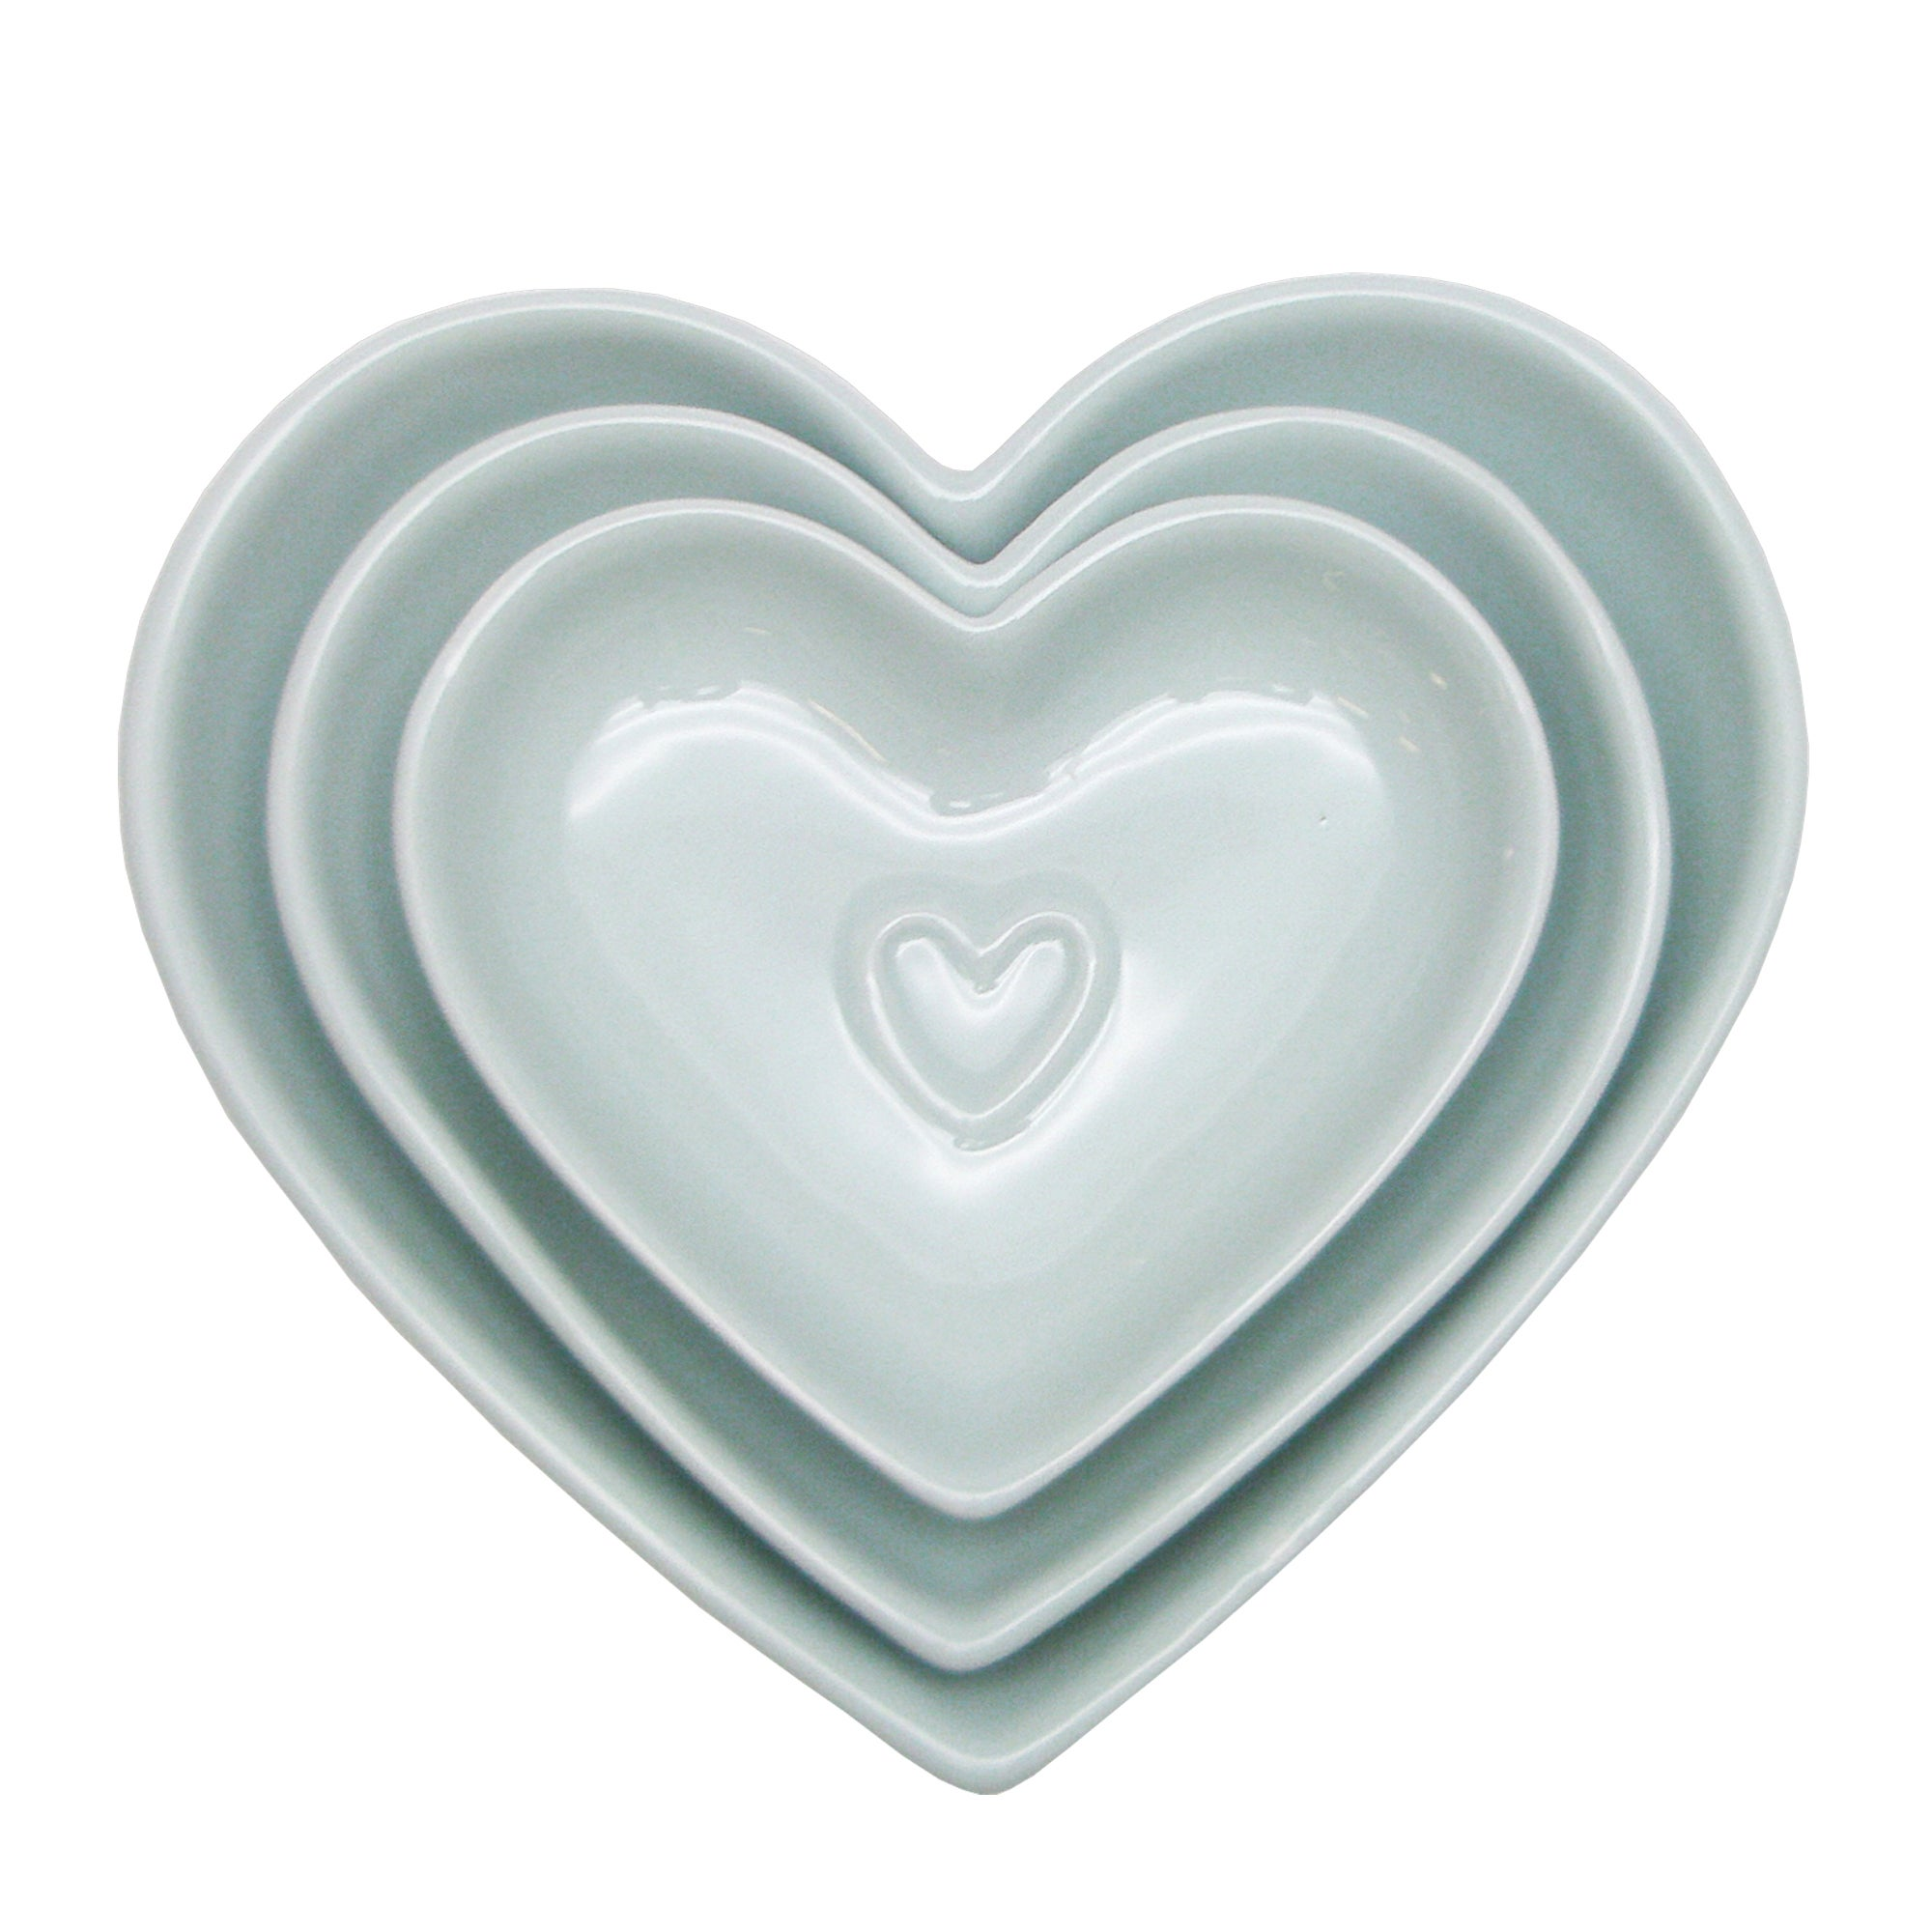 Photo of Country heart duck-egg nesting bowls duck egg blue